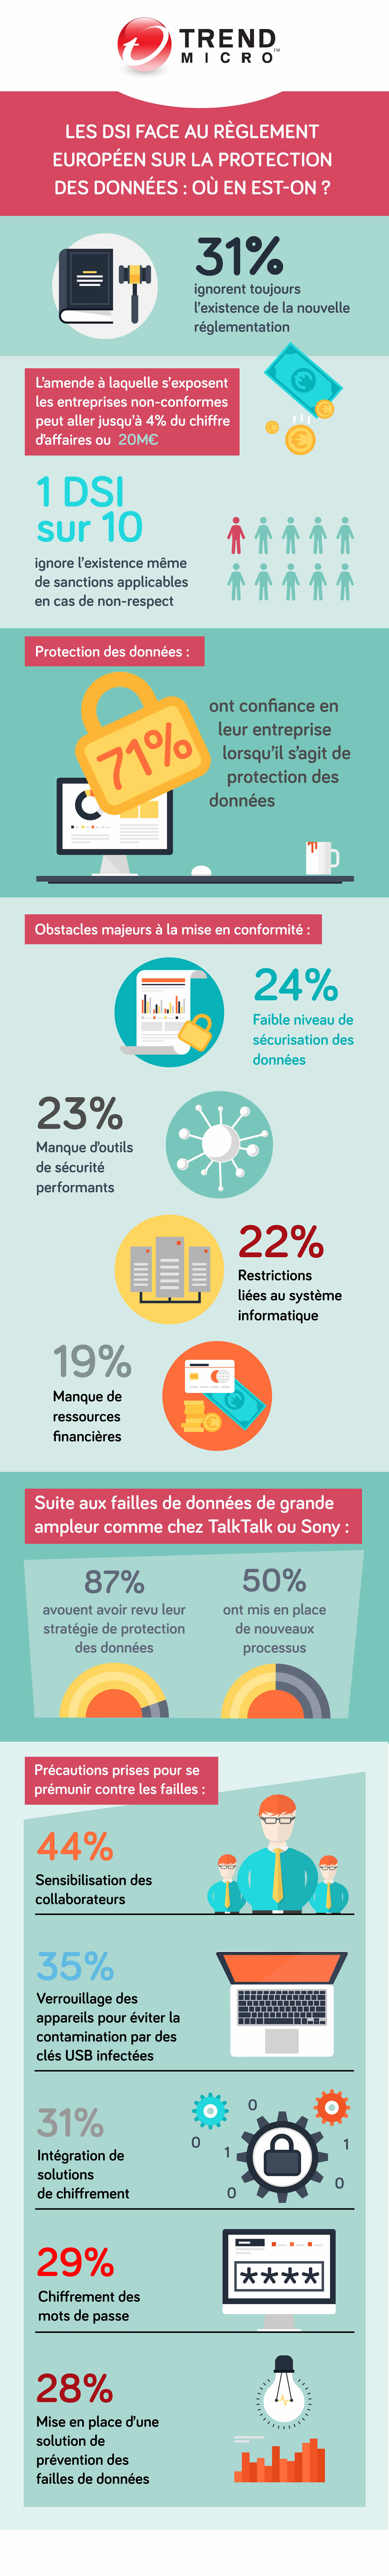 infographie-trend-micro